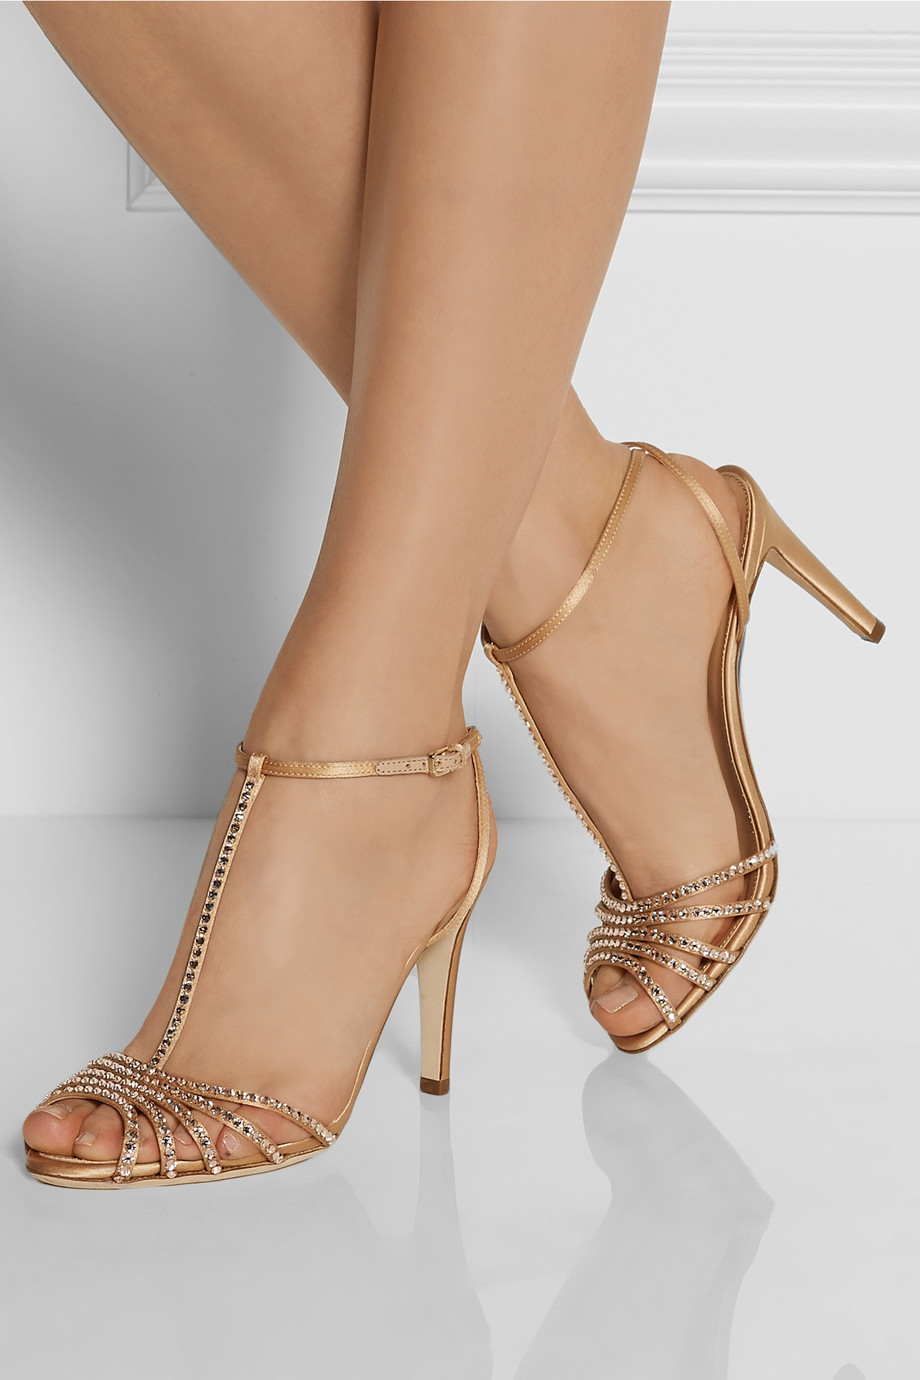 Sergio Rossi Metallic Crystal-Embellished Sandals buy cheap under $60 clearance exclusive cheap sale comfortable buy cheap perfect free shipping cheap price GeOwP8lerV